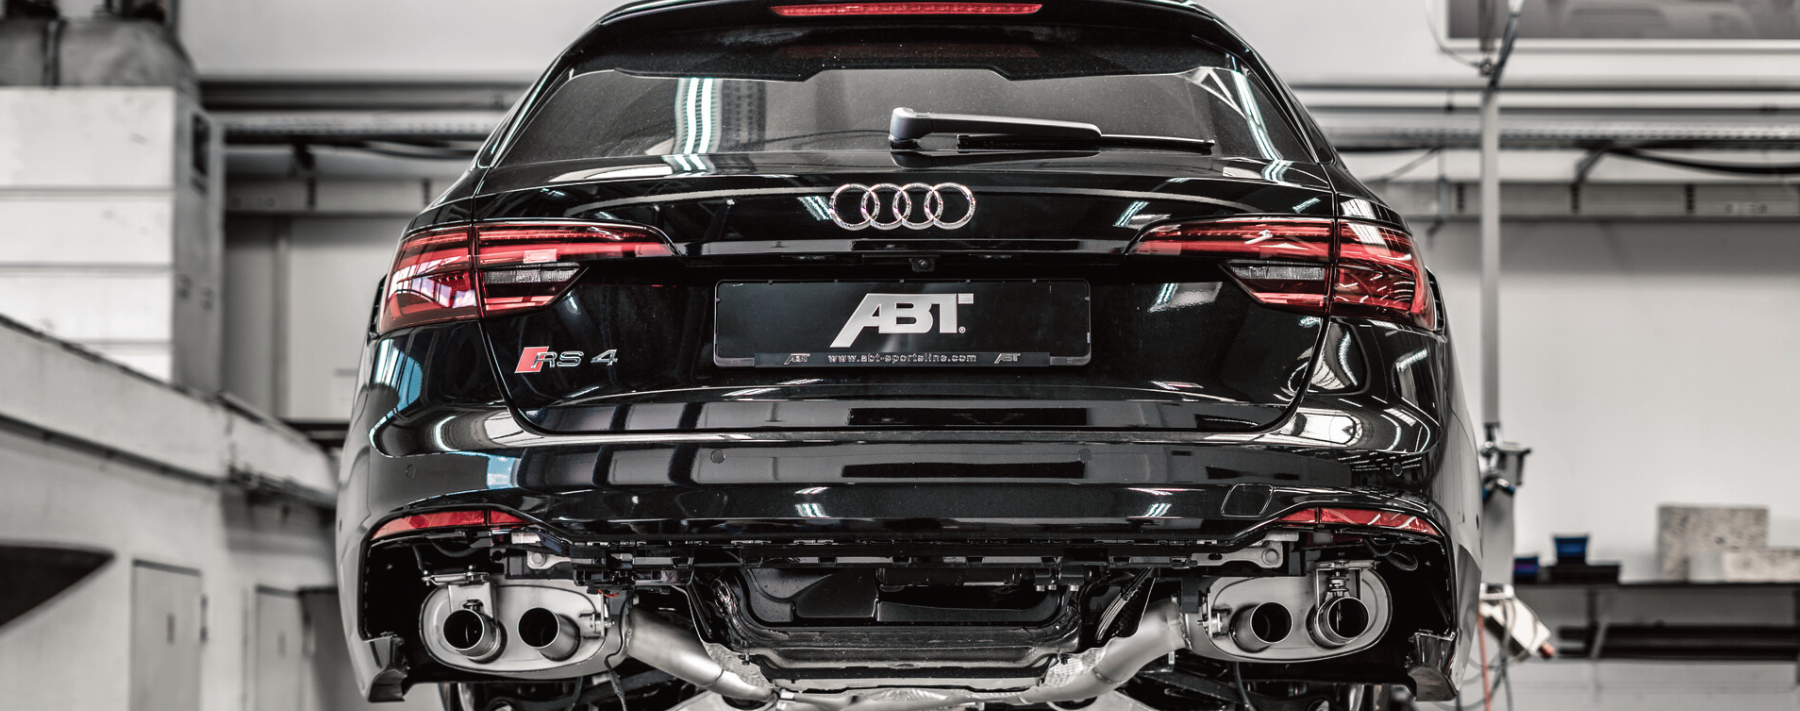 ABT Tuning jetzt uns